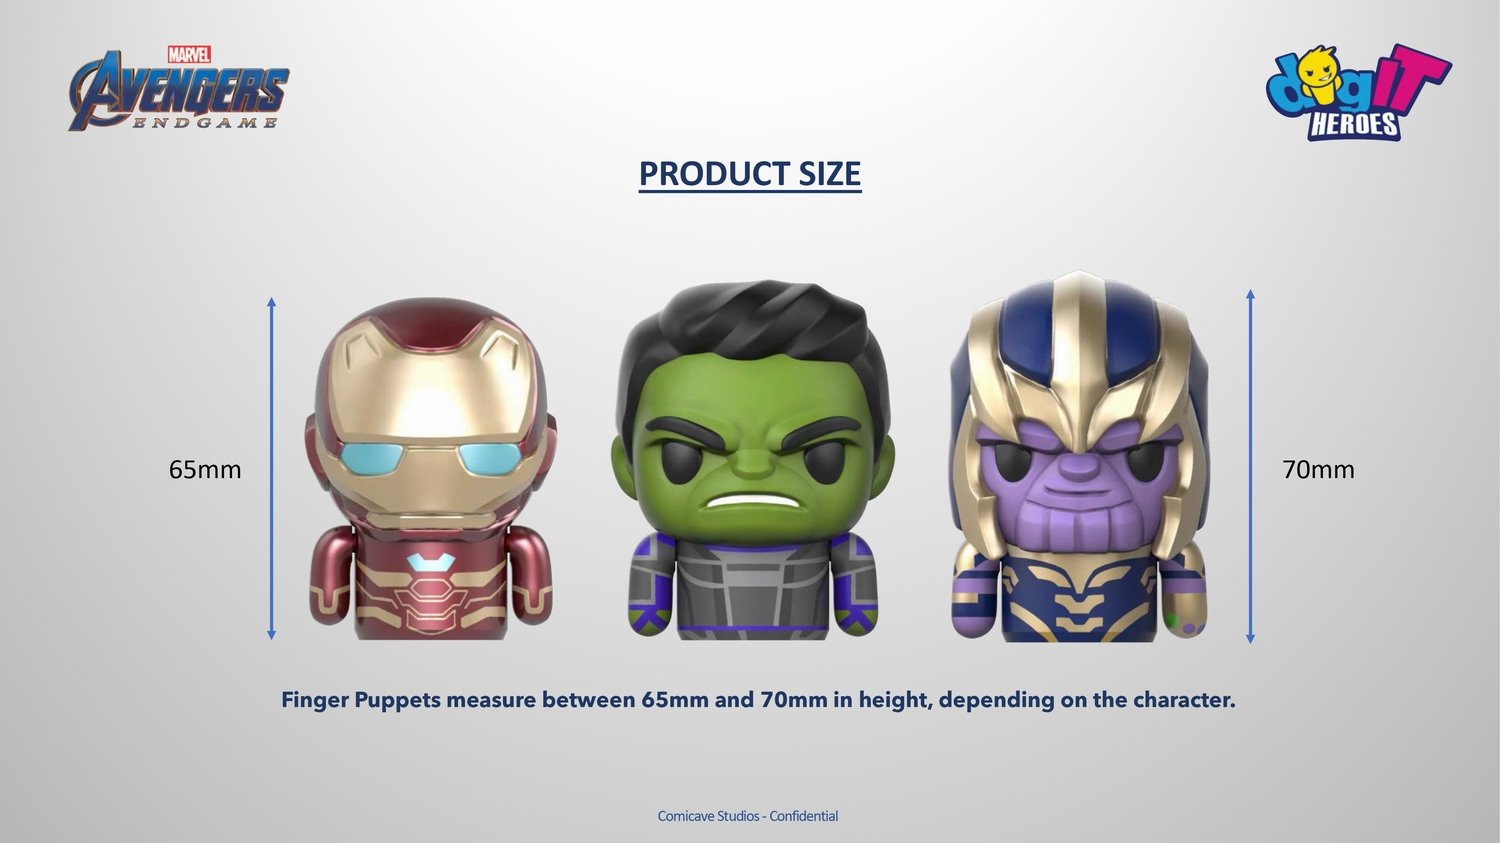 复制 SalesKit - digIT Avengers Endgame (blind box)-5.jpg